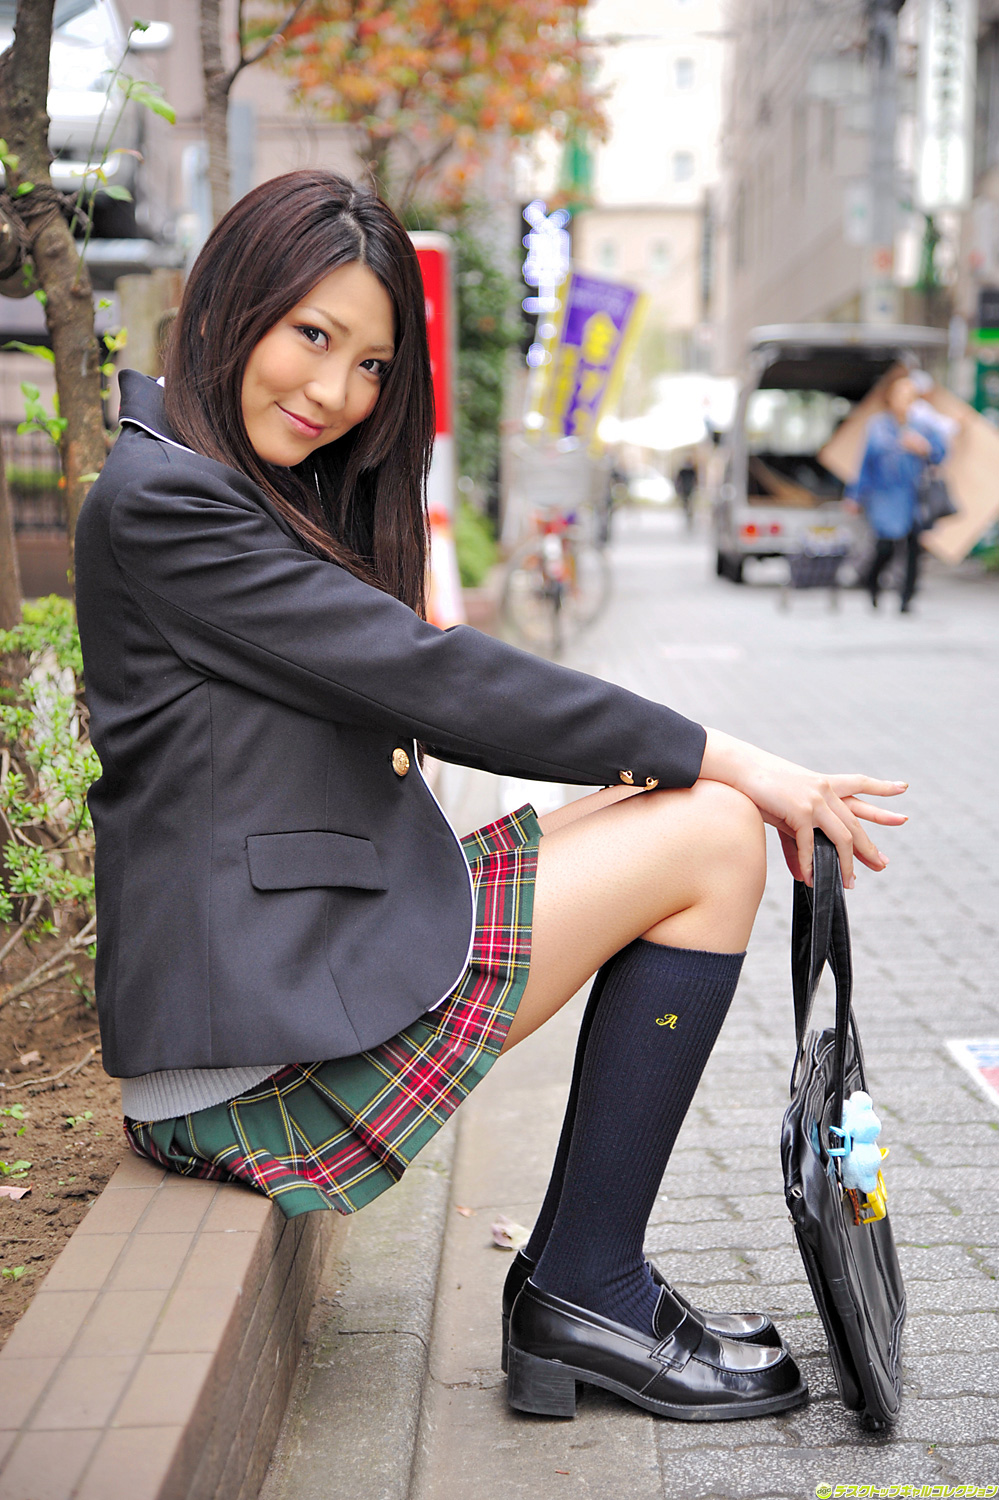 sakai girls I want to bullying a cheeky school girls  momoka sakai.